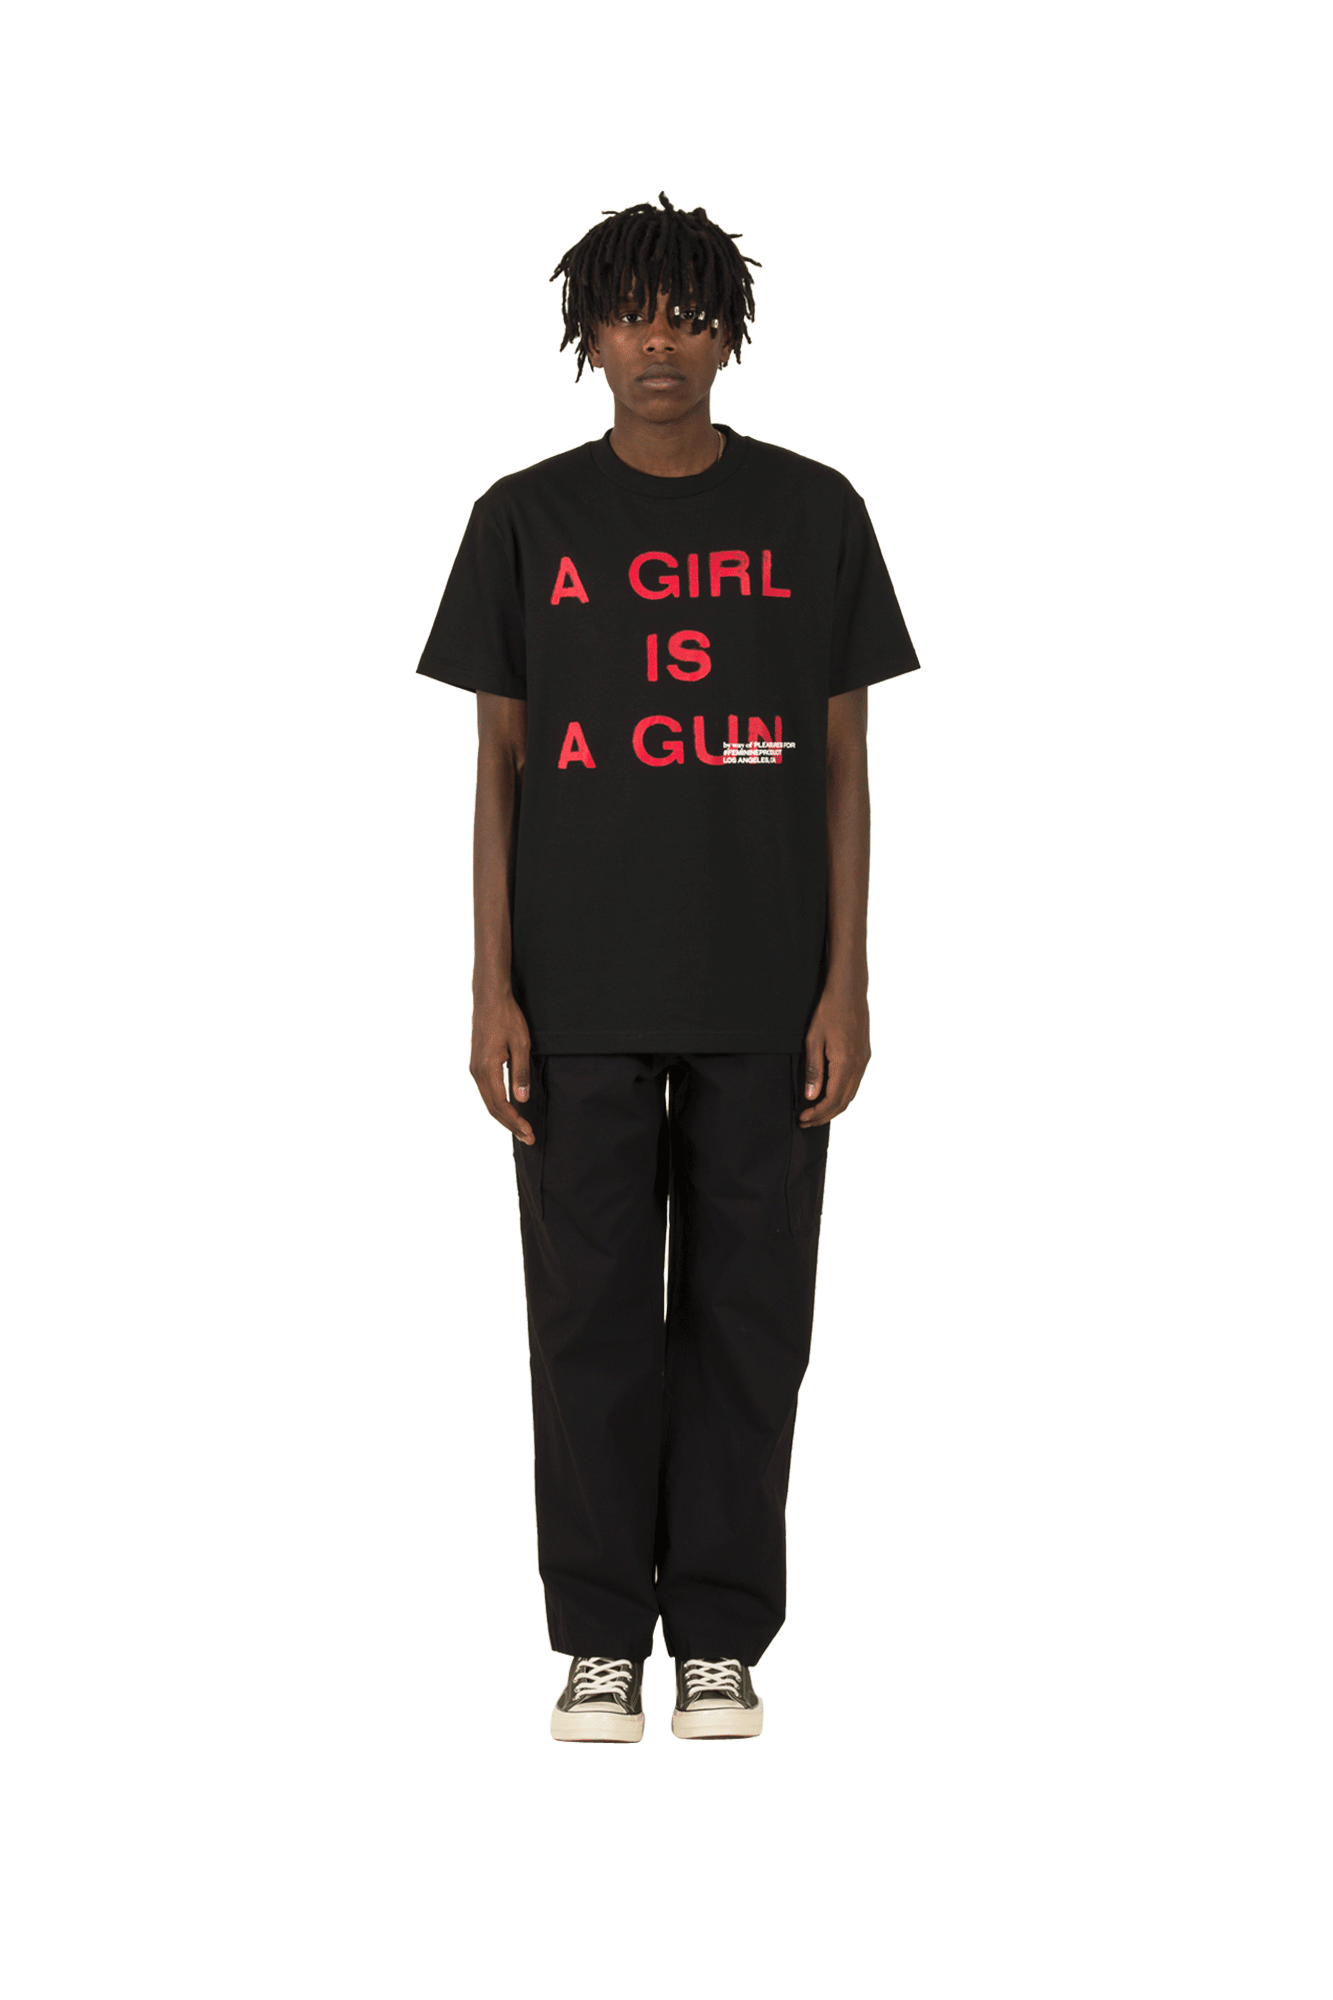 Pleasures T-Shirts GIRL IS A GUN T-SHIRT Nero P17F101047#000#BLK#M - One Block Down